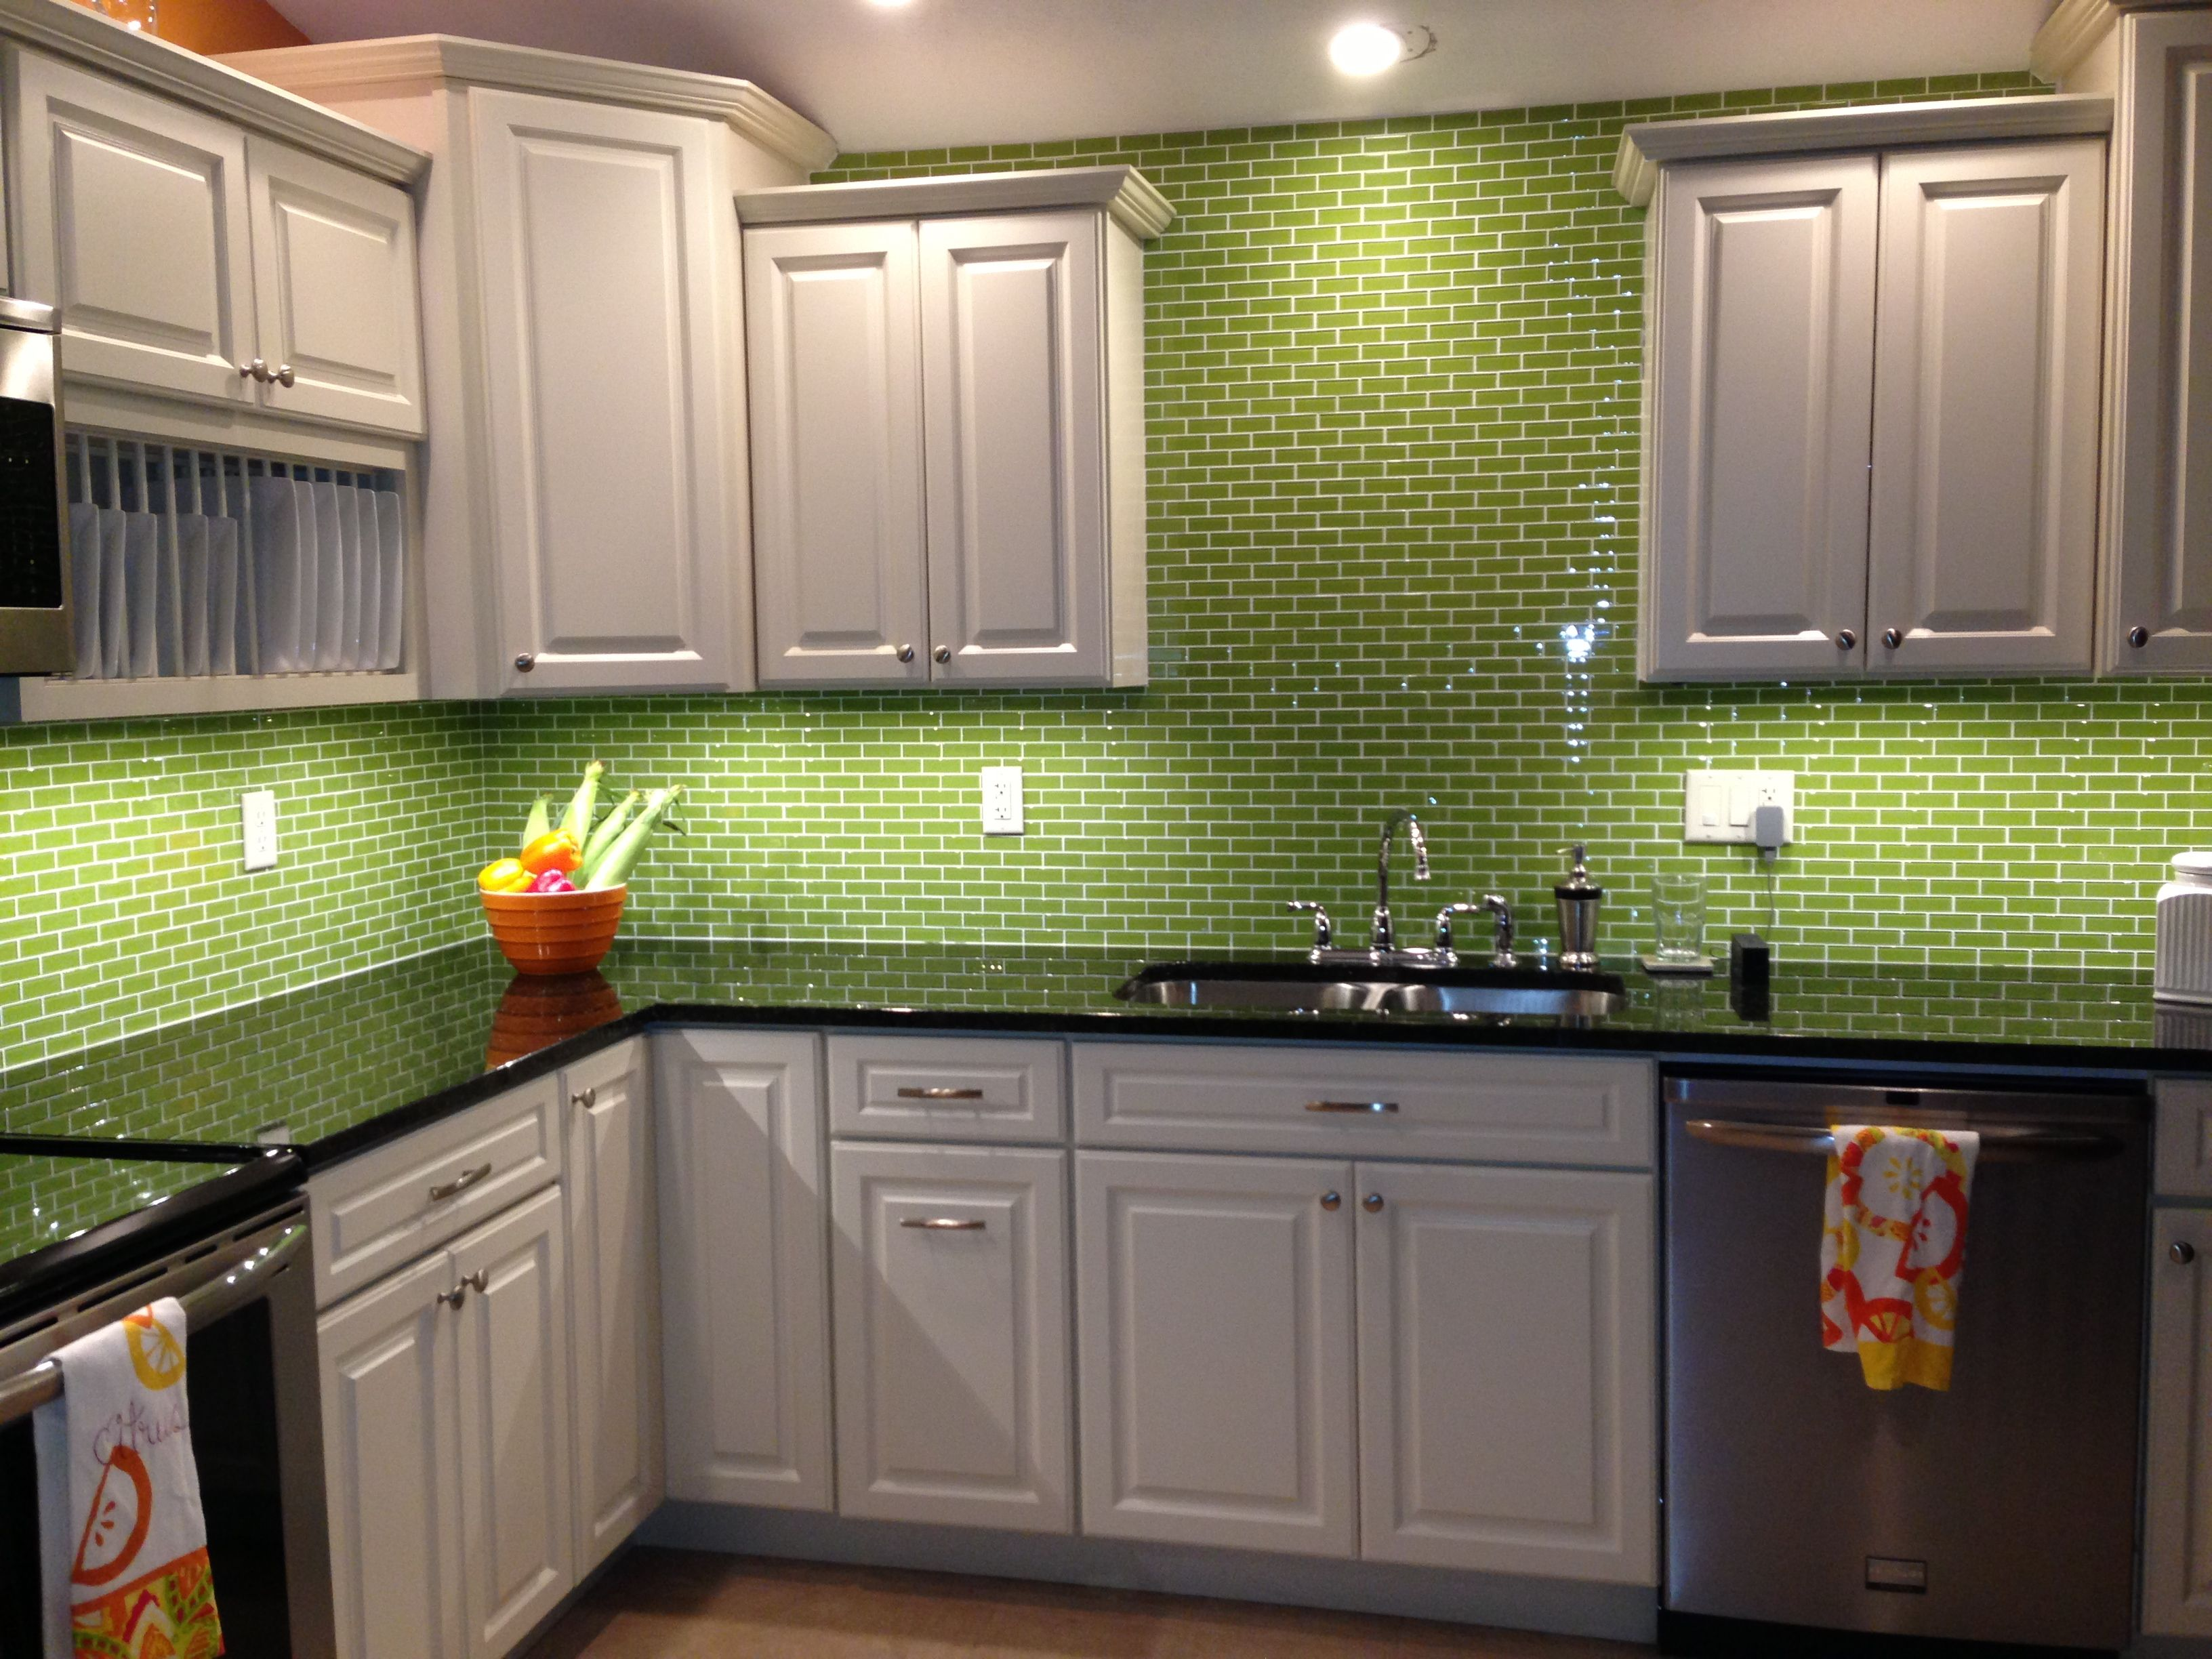 Lime green glass subway tile backsplash kitchen kitchen Backsplash tile for kitchen